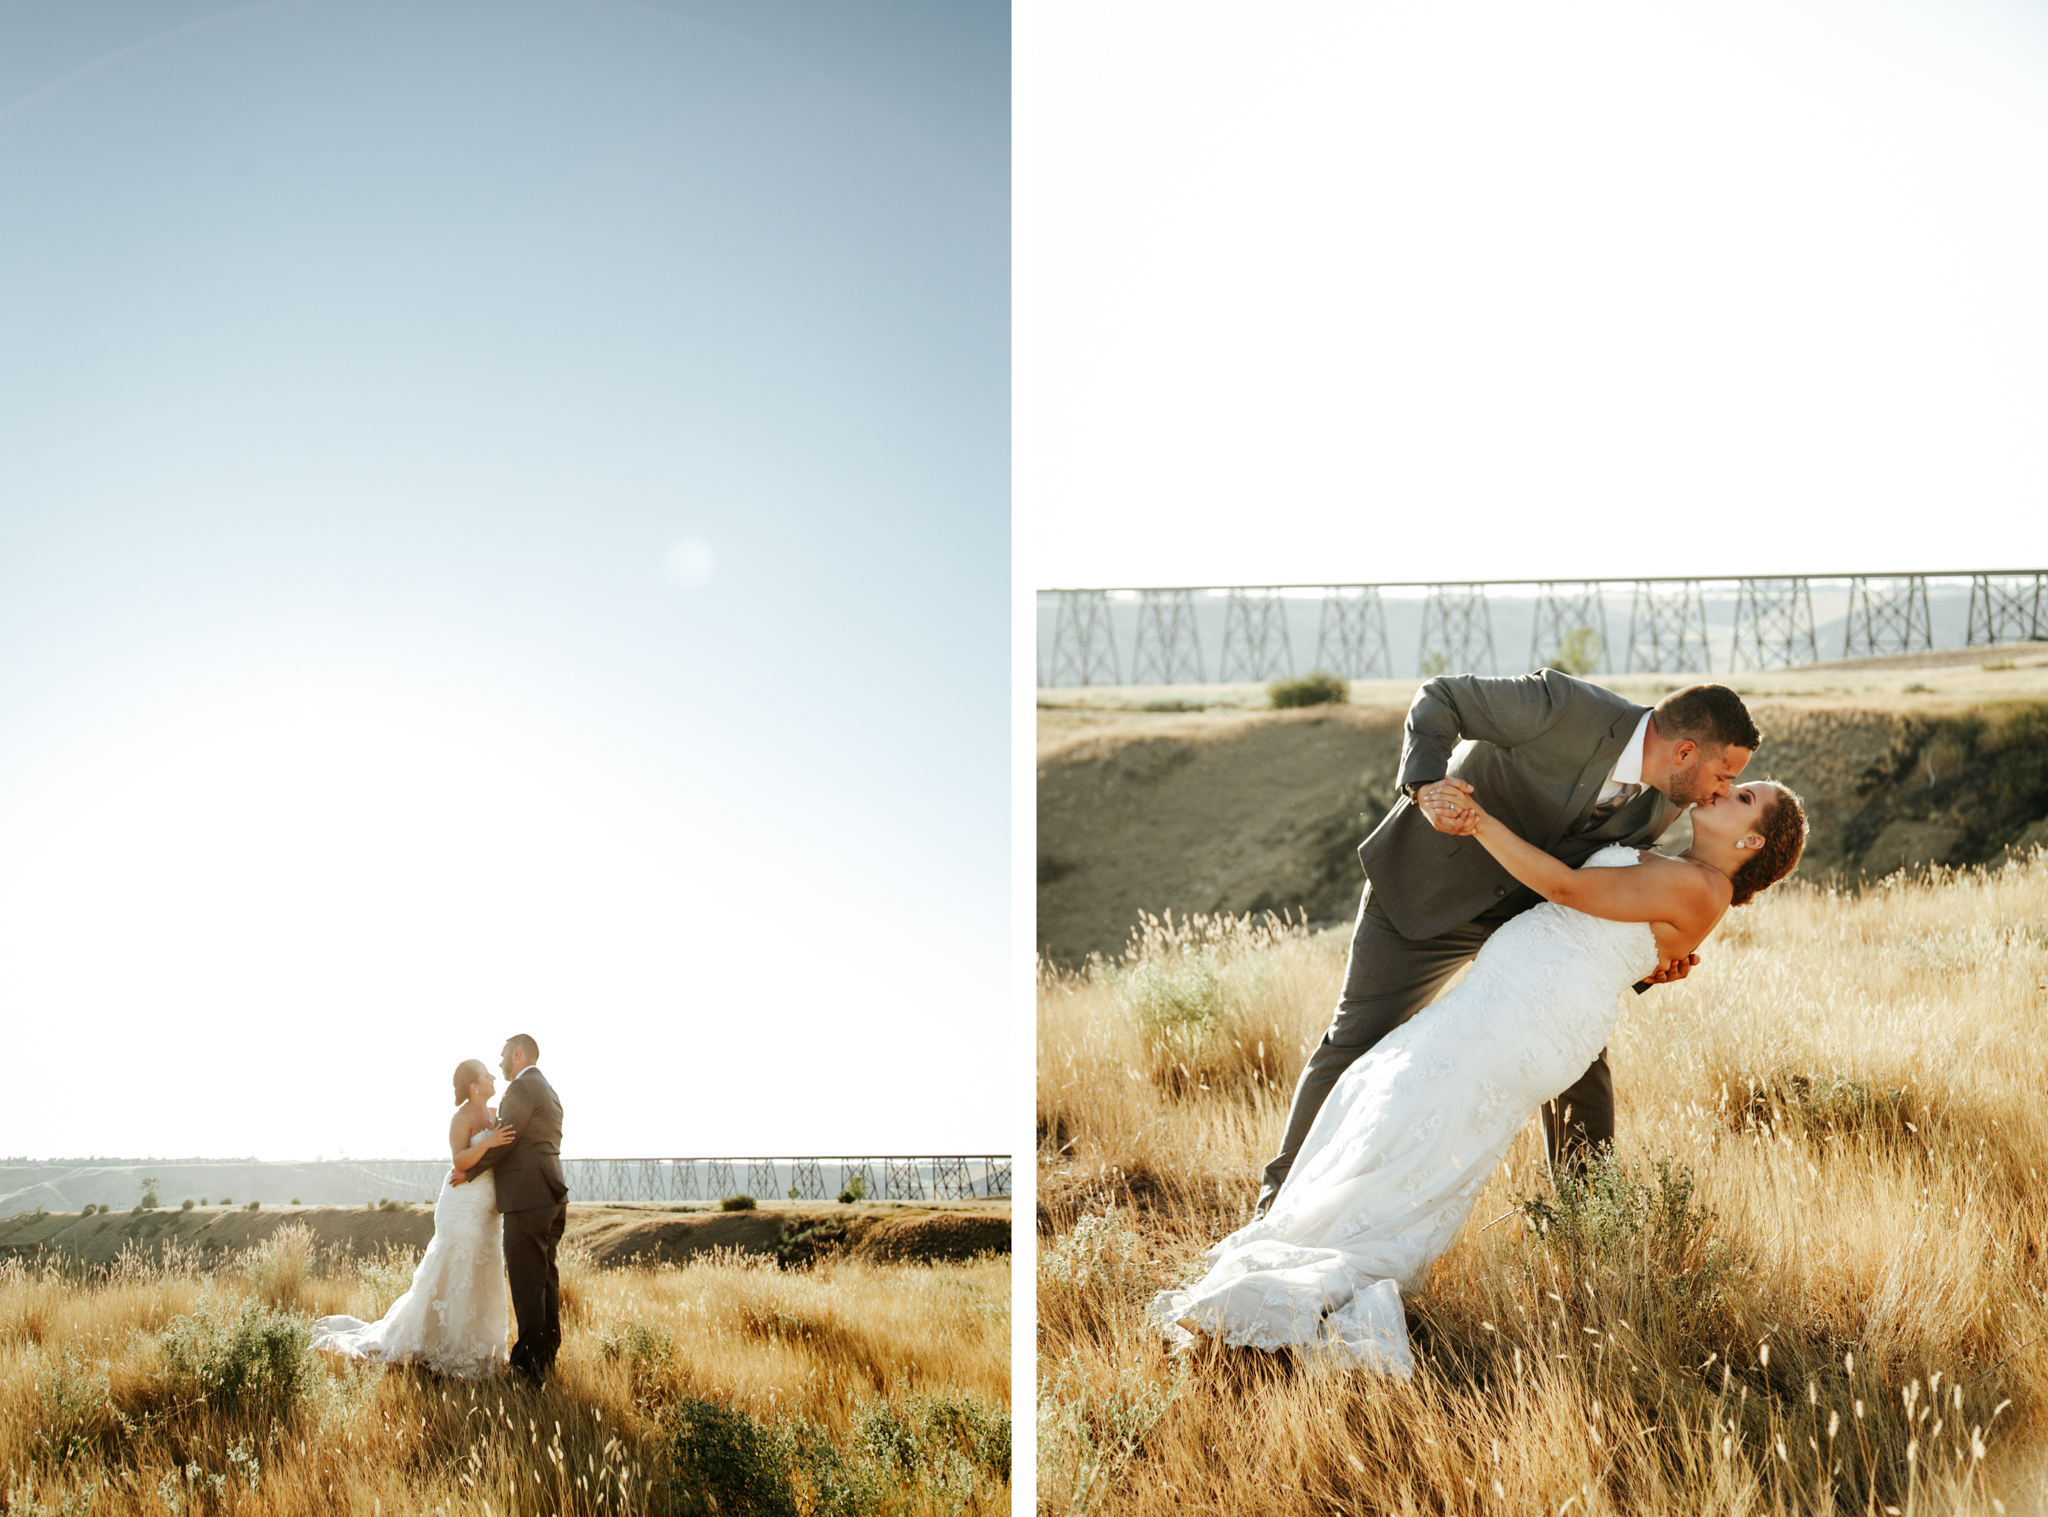 lethbridge-wedding-photographer-love-and-be-loved-photography-trent-danielle-galt-reception-picture-image-photo-231.jpg